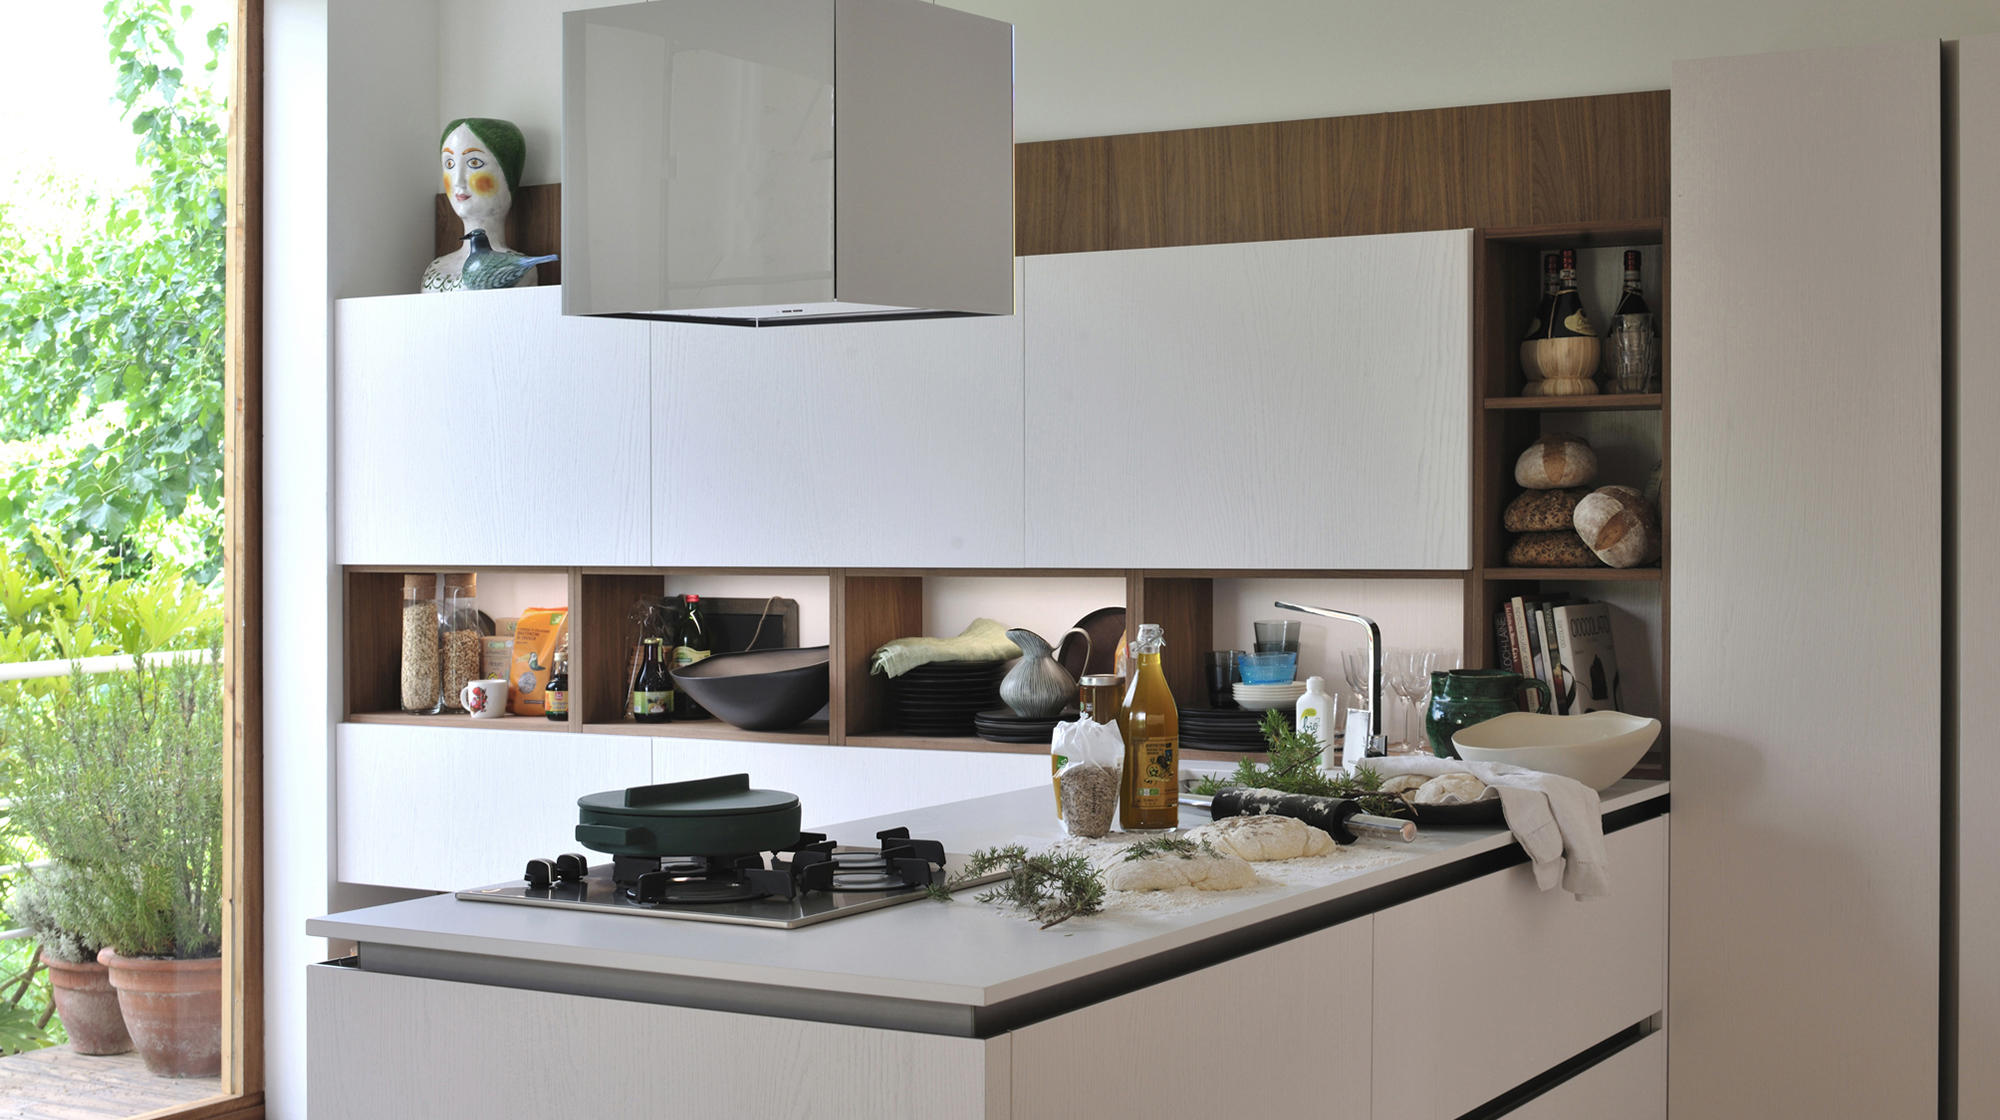 Oyster pro fitted kitchens from veneta cucine architonic - Veneta cucine oyster ...